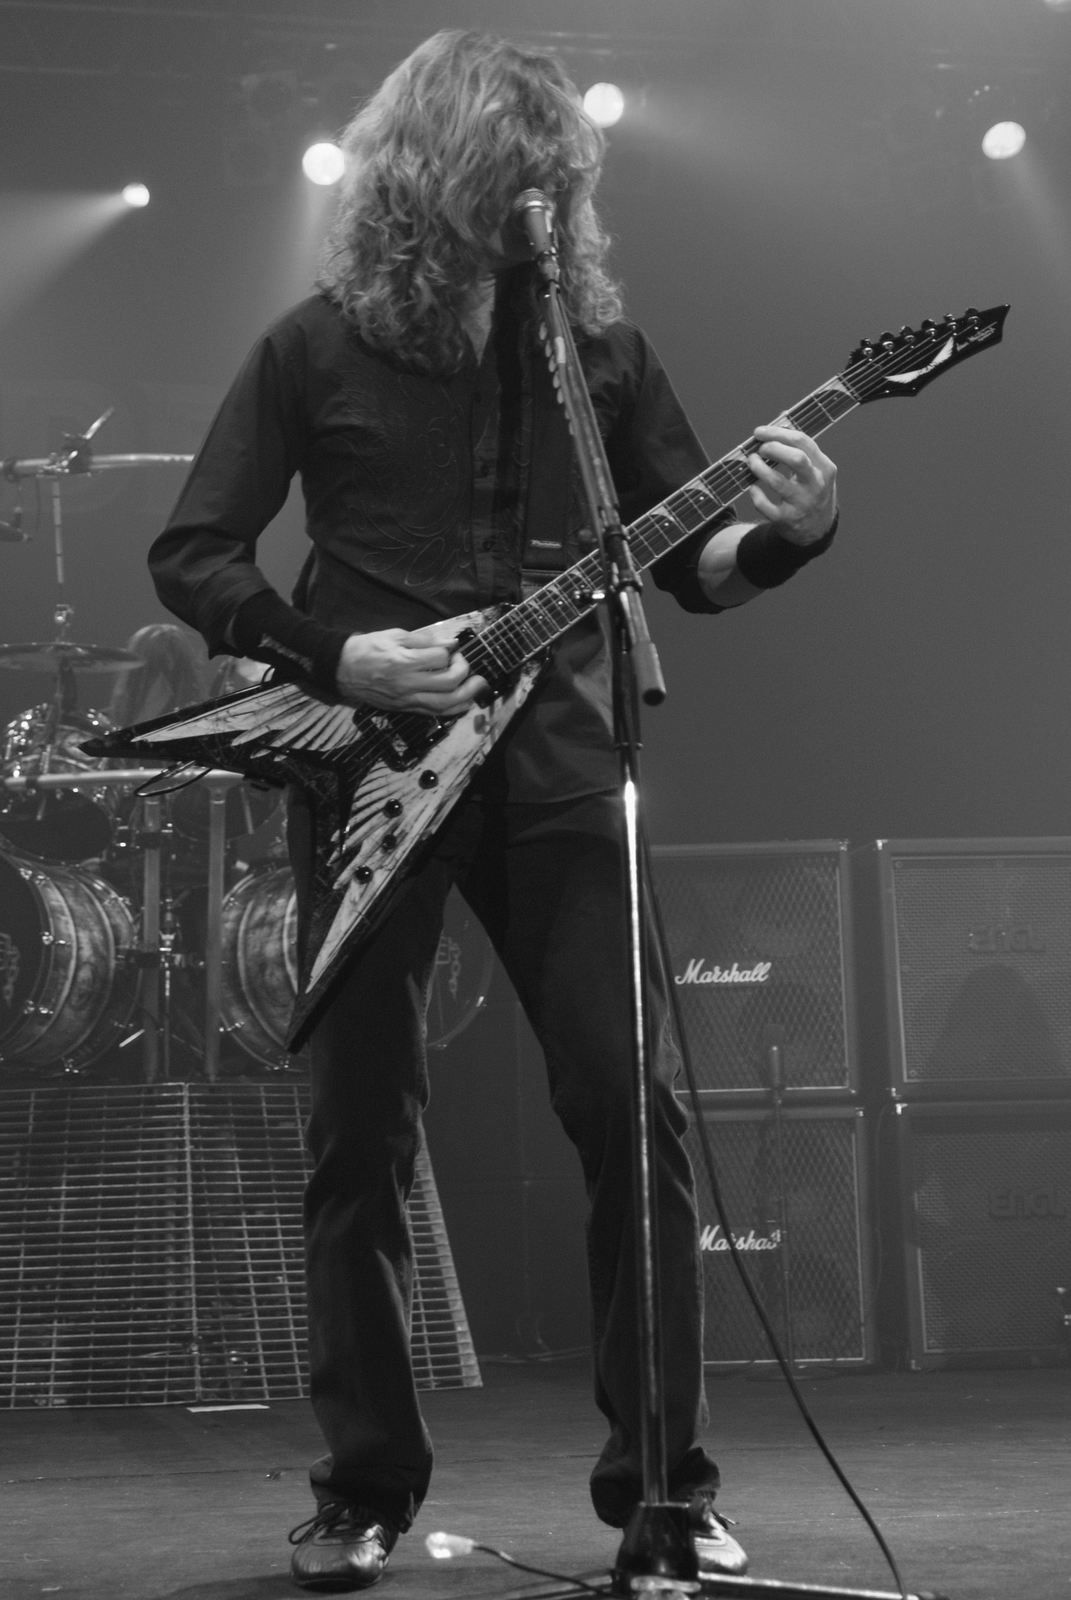 Dave Mustaine from Megadeth during Metalmania, 2008